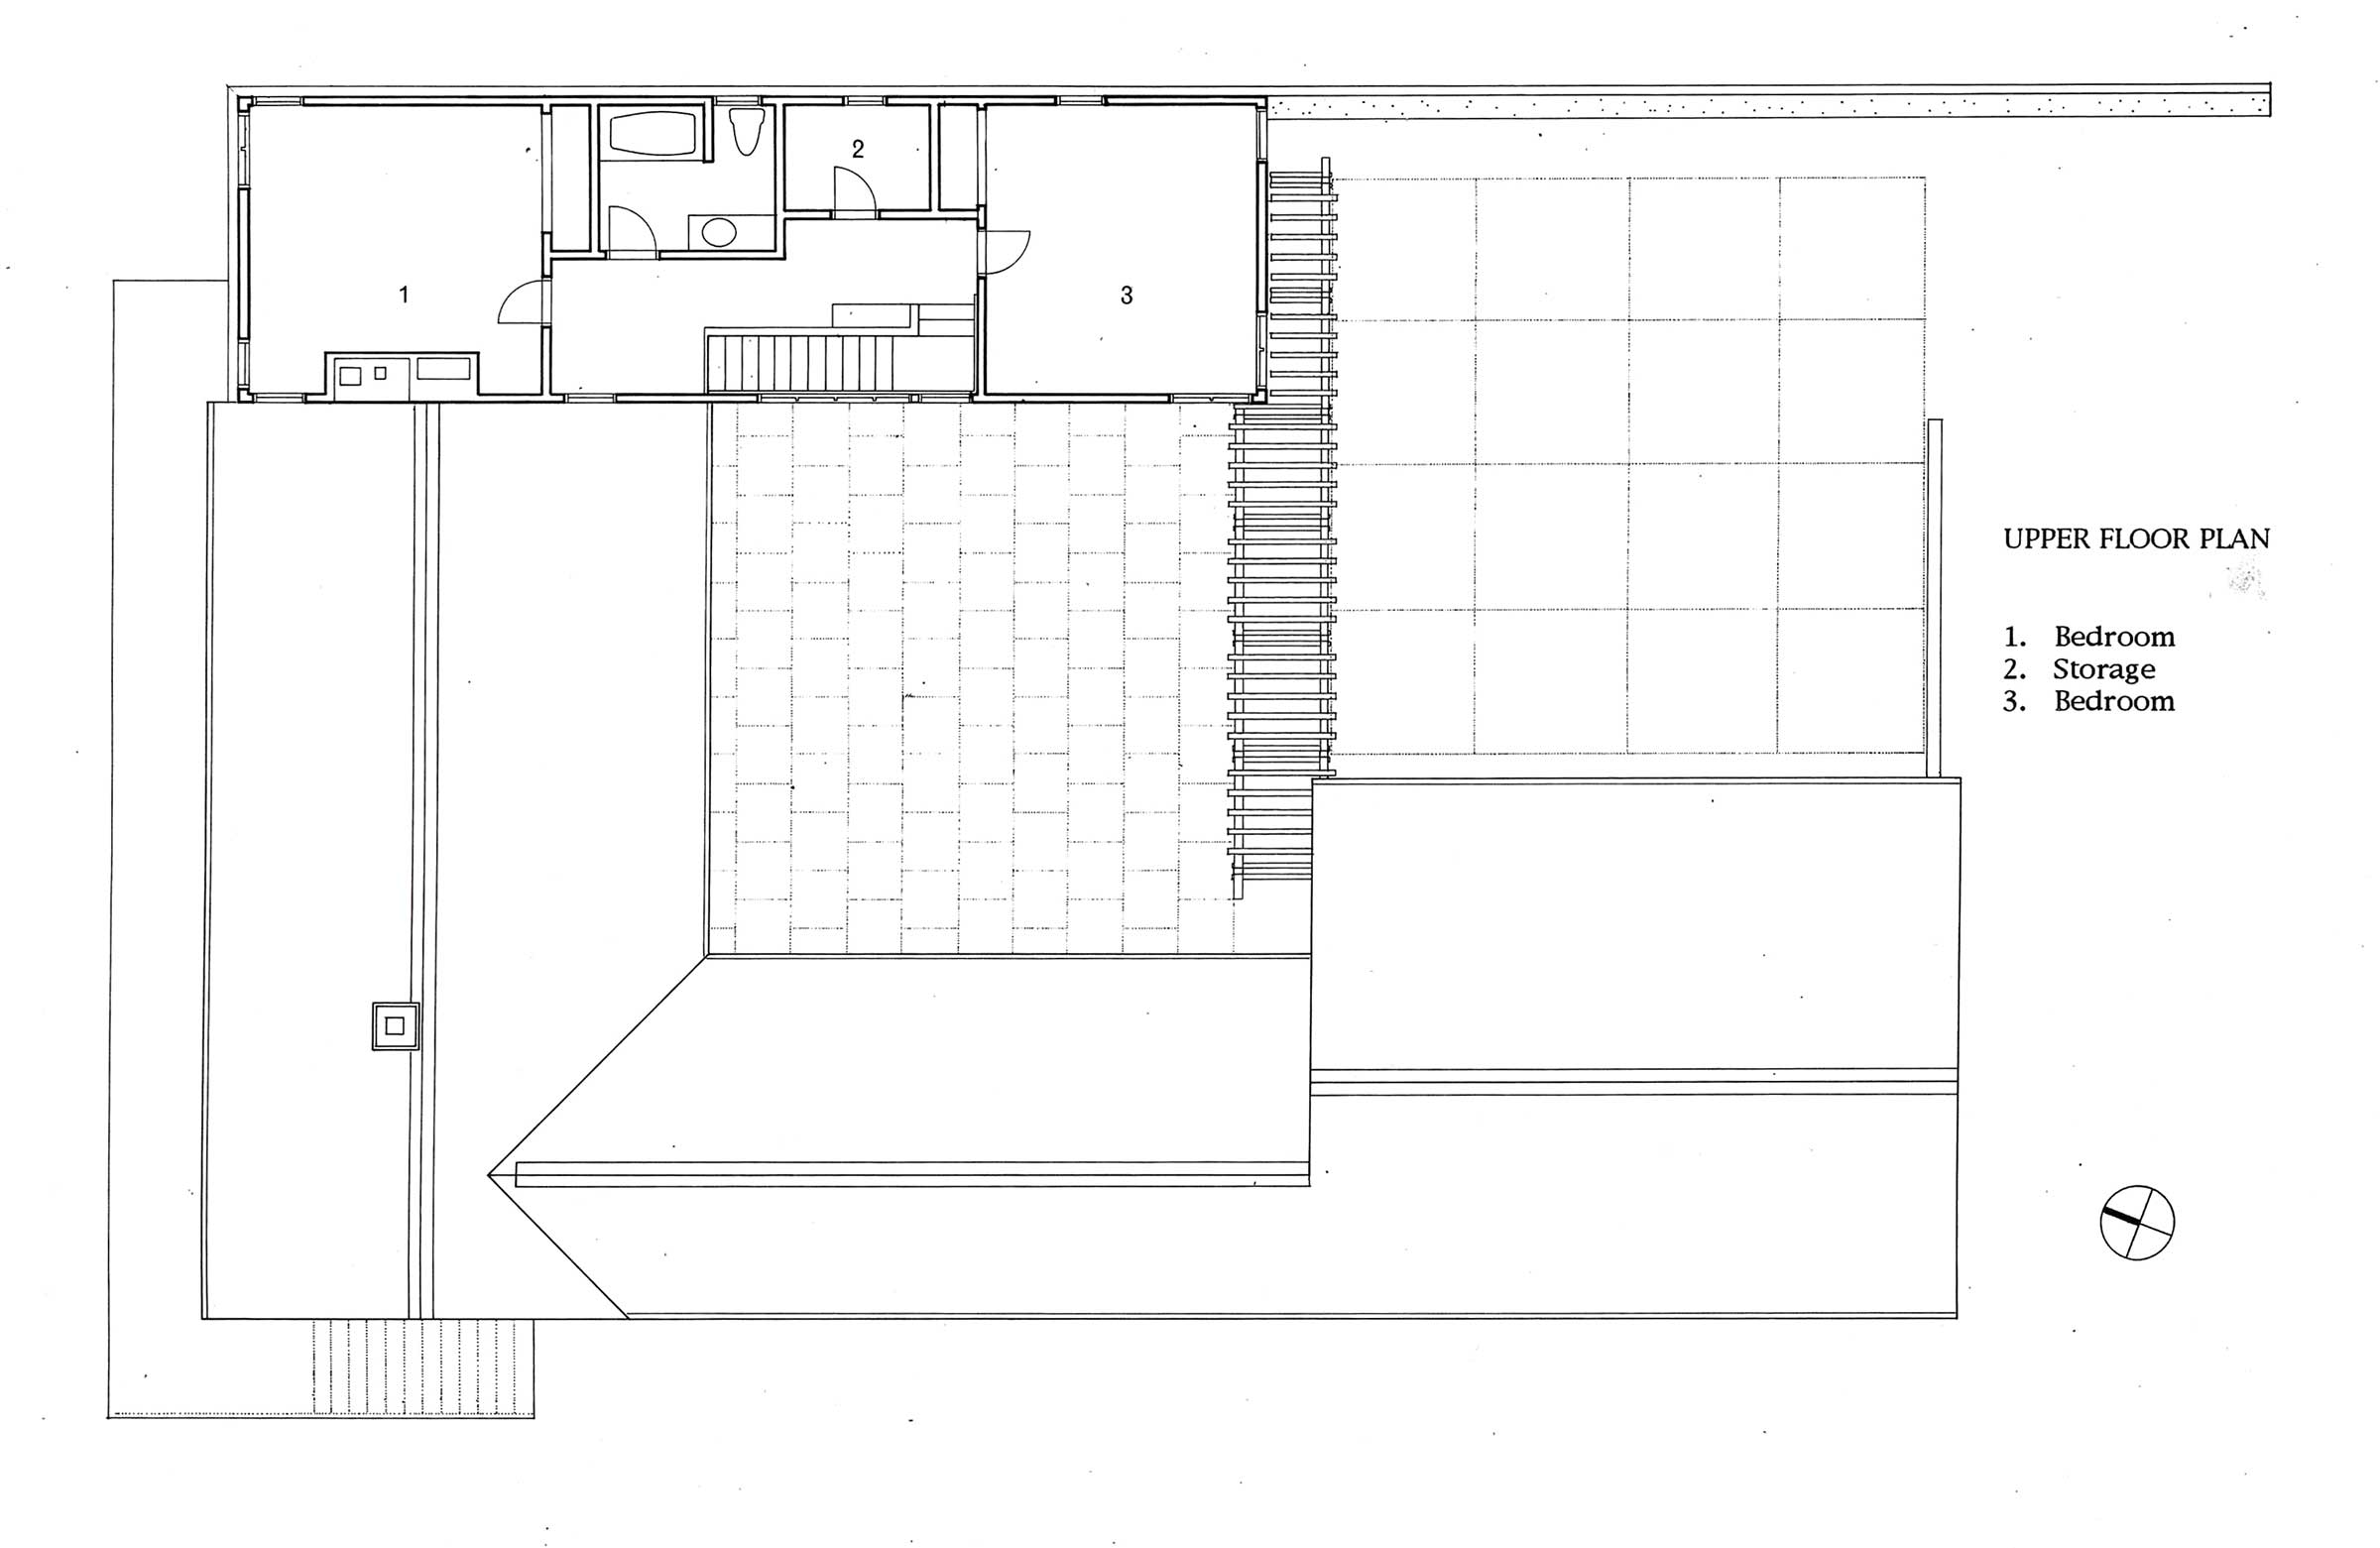 Naito-second-floor-plan.jpg